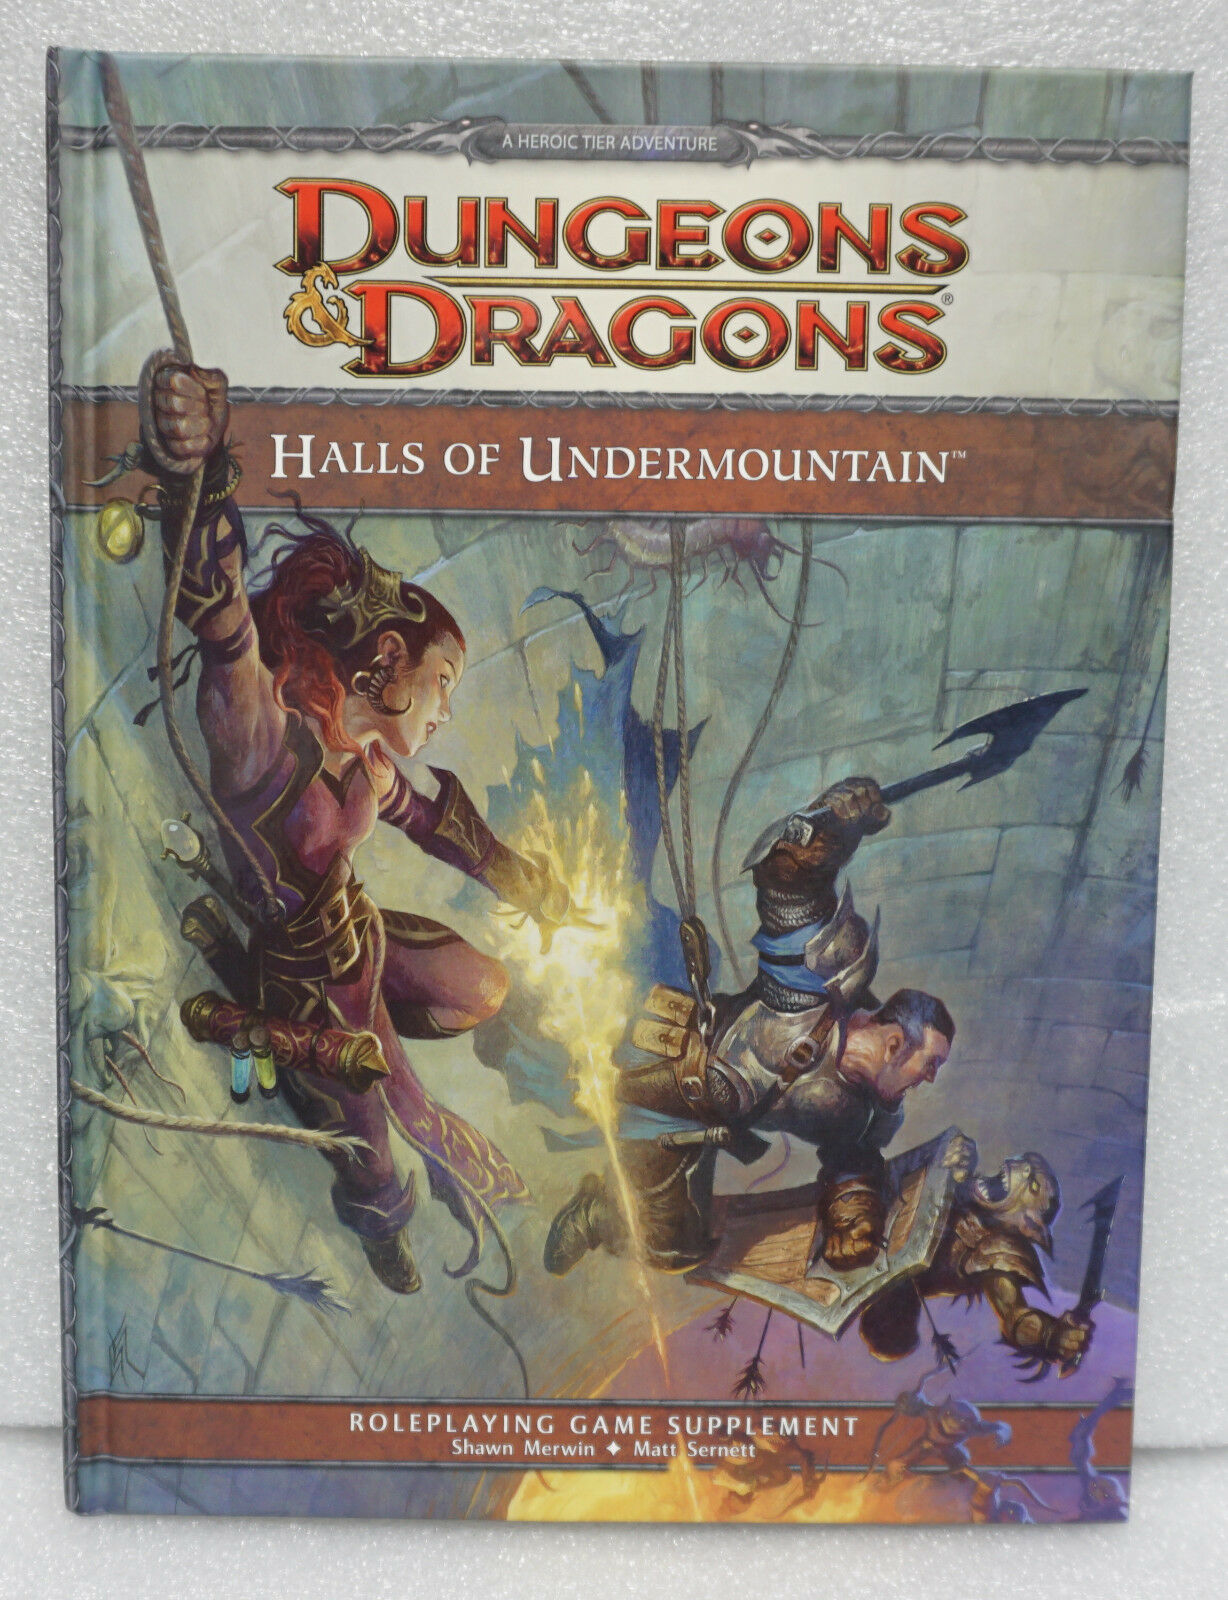 Halls Of Undermountain A 4th Edition Dungeons And Dragons Supplement By Wizards Rpg Team 2012 Hardcover For Sale Online Ebay